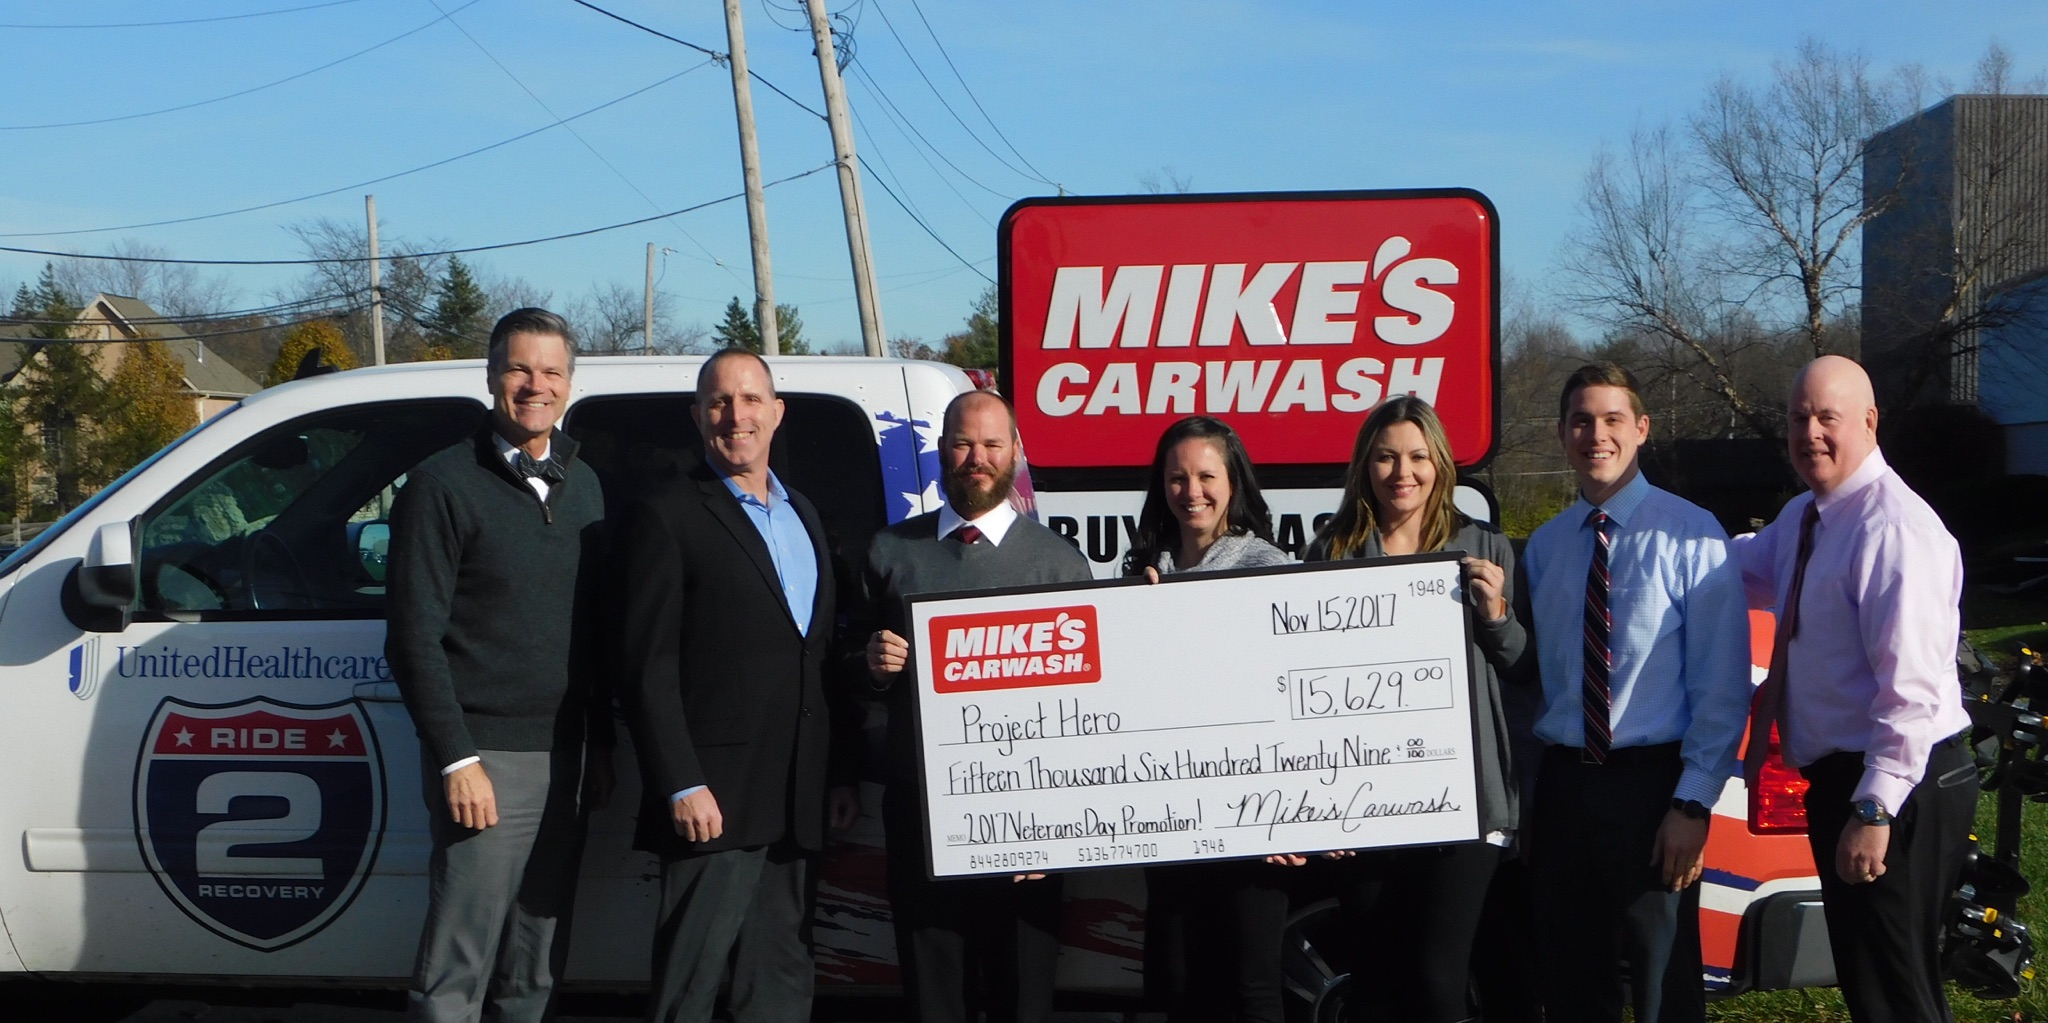 MIKE'S CARWASH donates $15.6K to Project Hero